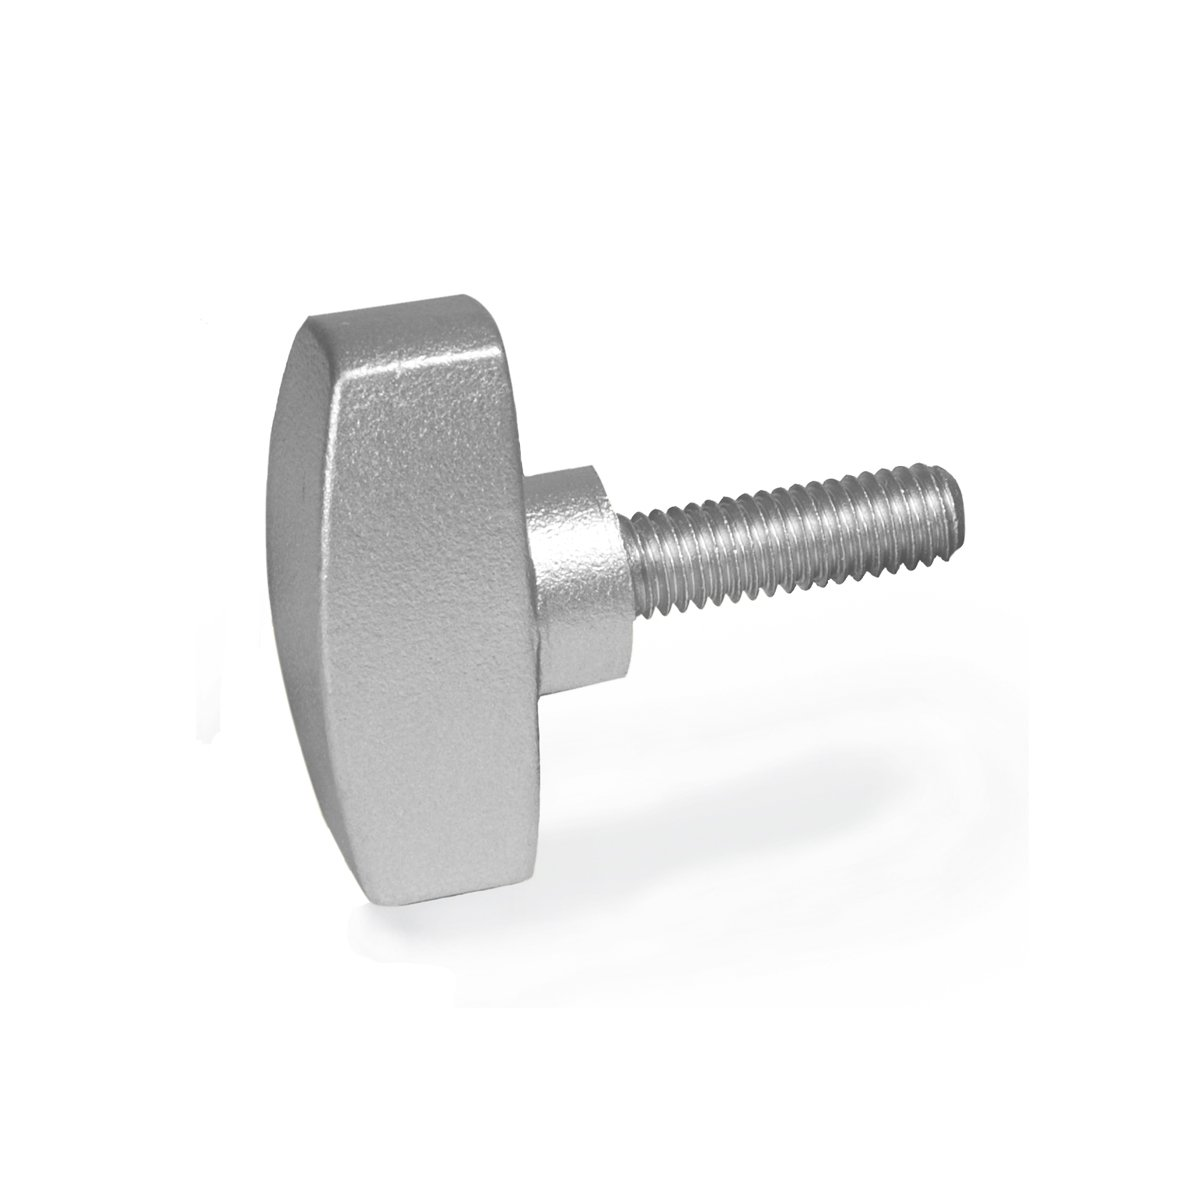 Ganter Standard Elements | Stainless Steel Wing Nut–GN 433Handle Diameter 34mm Stainless Steel Fine Cast Iron Pack of 2, Silver, GN 433-34-M8-20-MT Ganter Normelemente